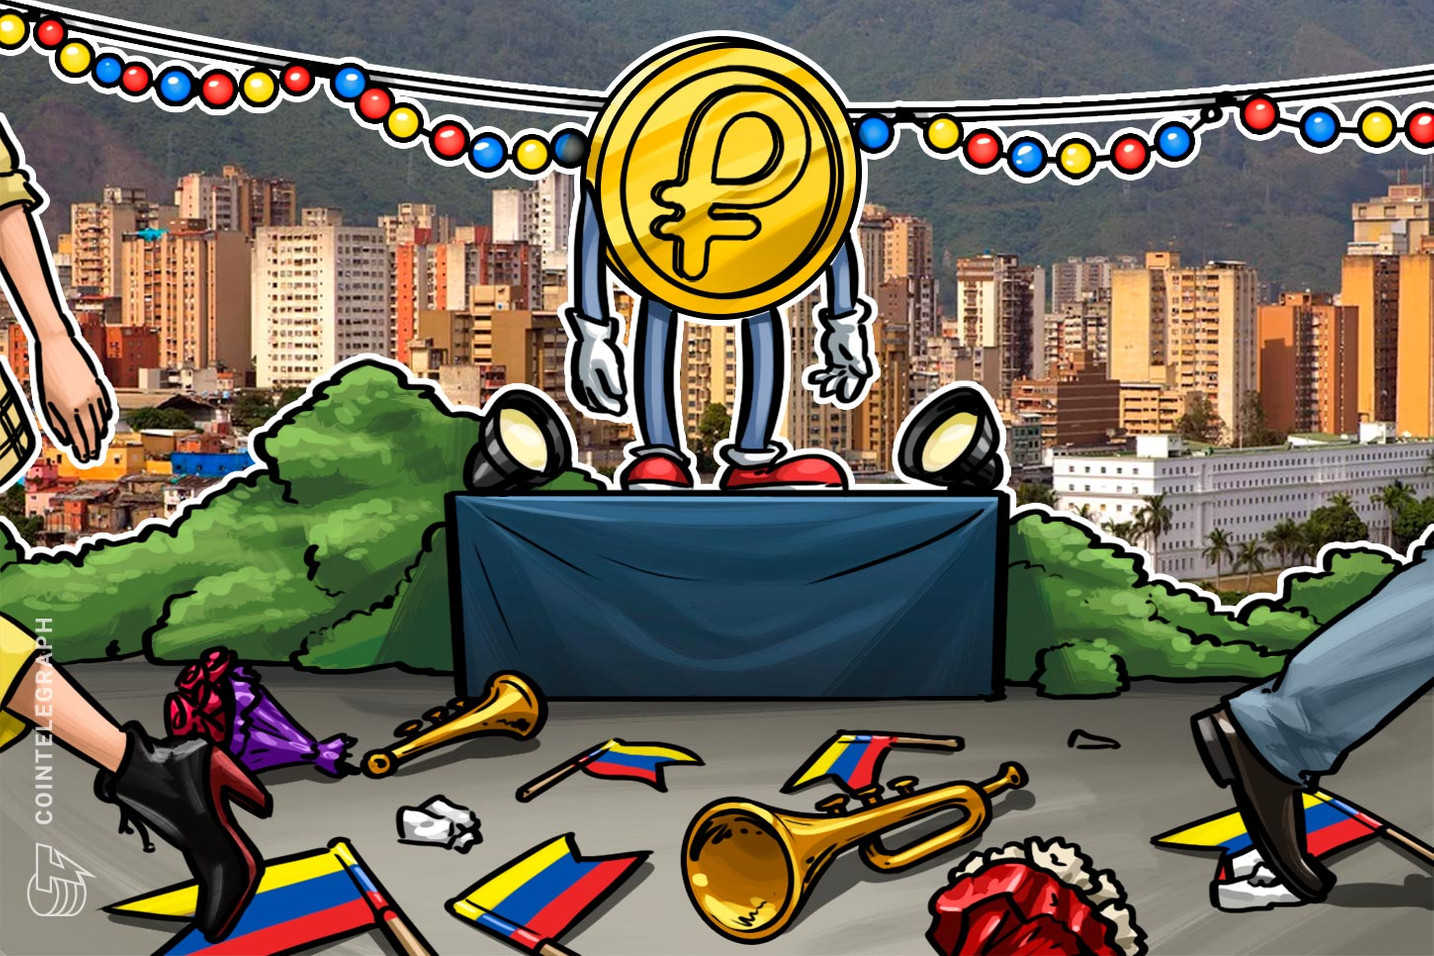 'No Sign of the Petro Here': Mystery and Confusion Besets Venezuela's Crypto 'Revolution'